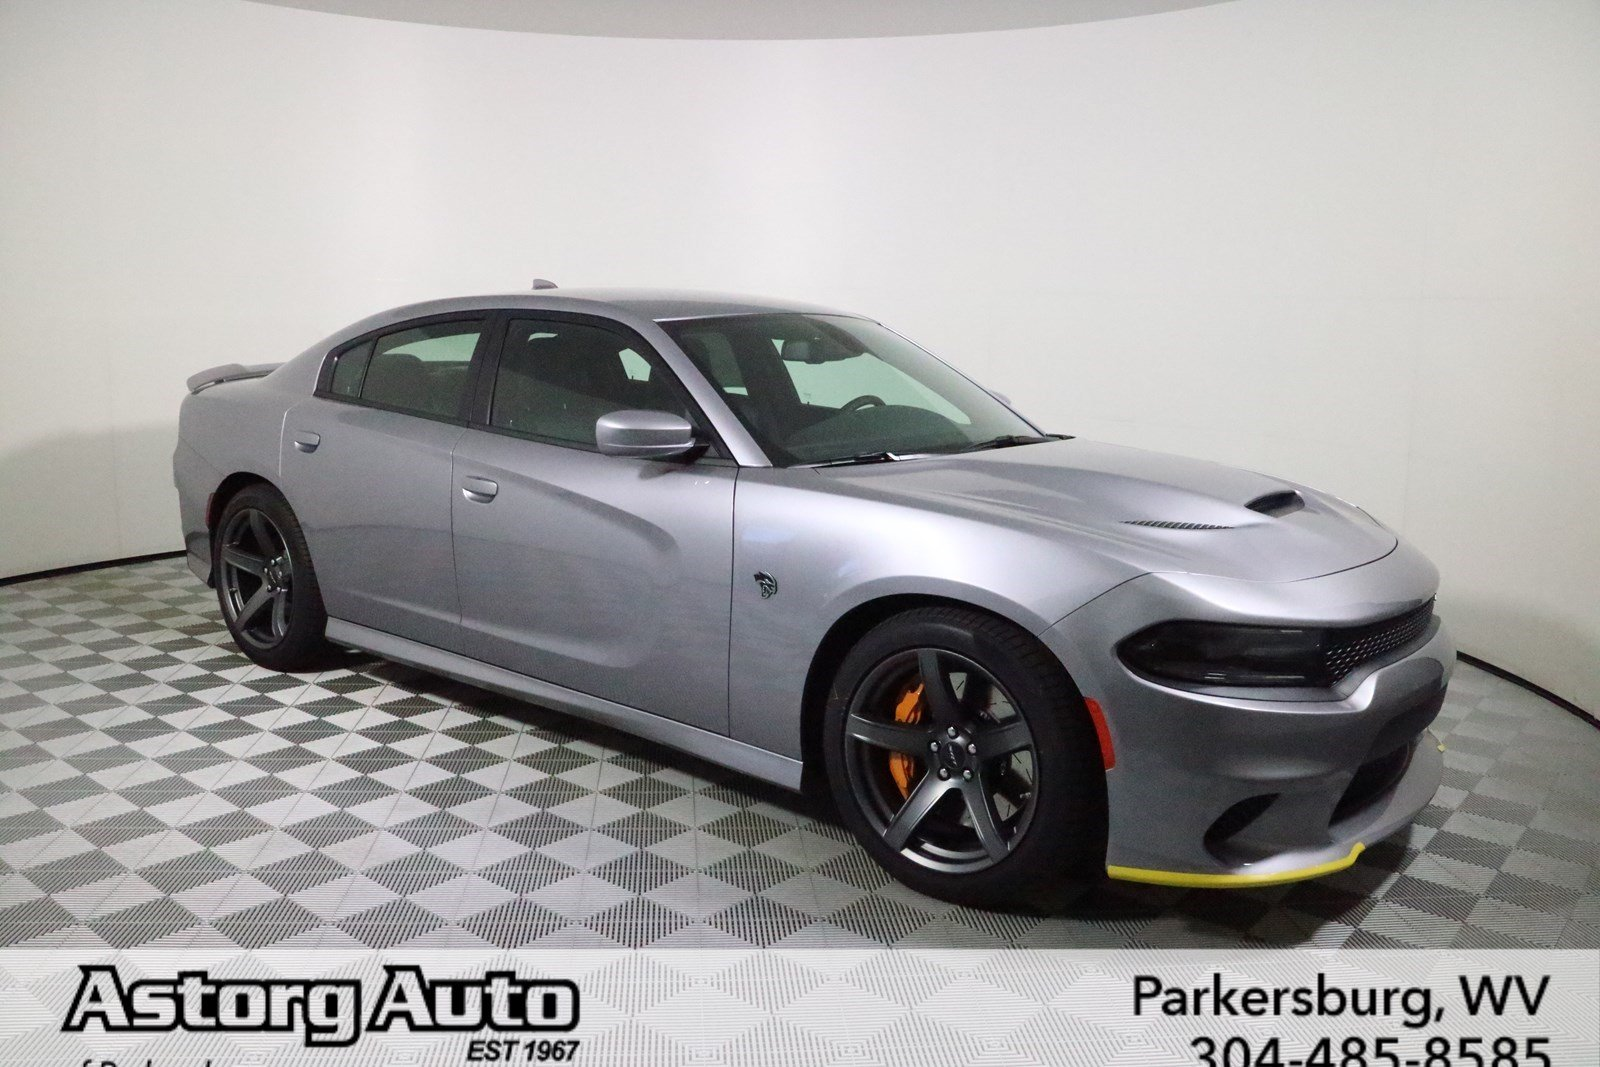 new 2018 dodge charger srt hellcat 4dr car in parkersburg d6765 astorg auto. Black Bedroom Furniture Sets. Home Design Ideas